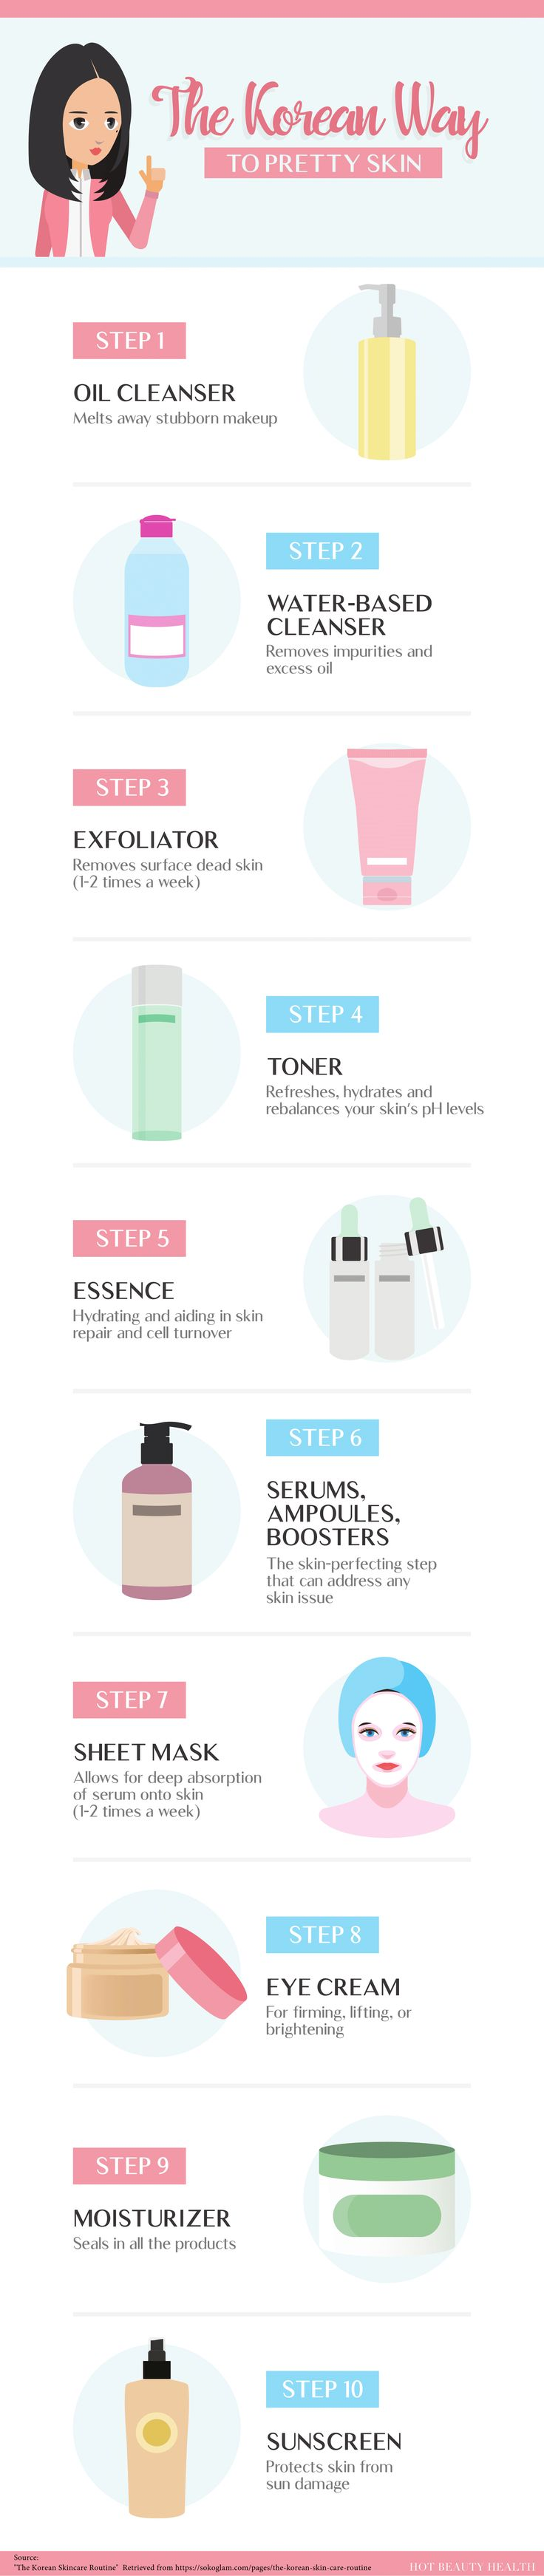 The ever so popular 10-step Korean skincare routine is easier than ever to do with this value set curated for your skin type from Soko Glam. Find what's right for your skin type here!